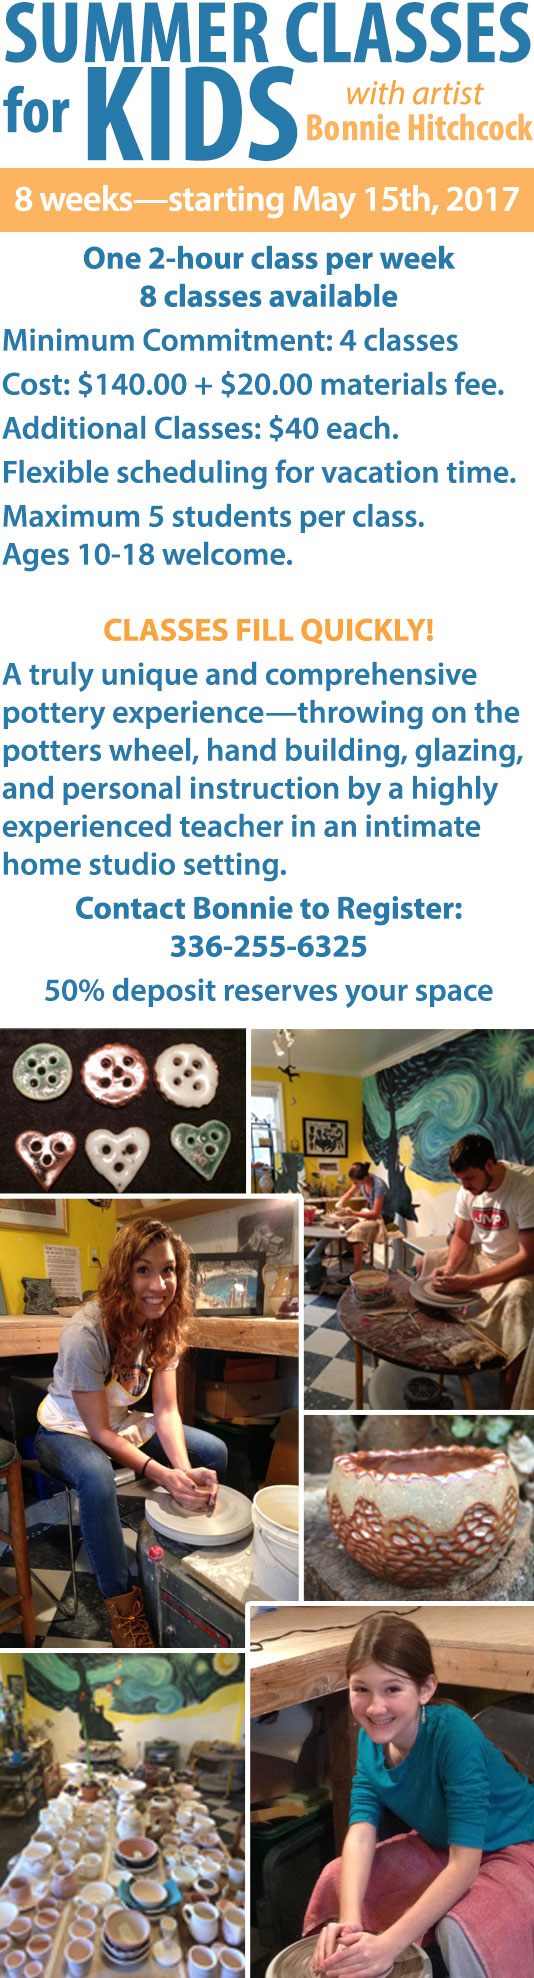 Summer Classes for Kids with artist Bonnie Hitchcock